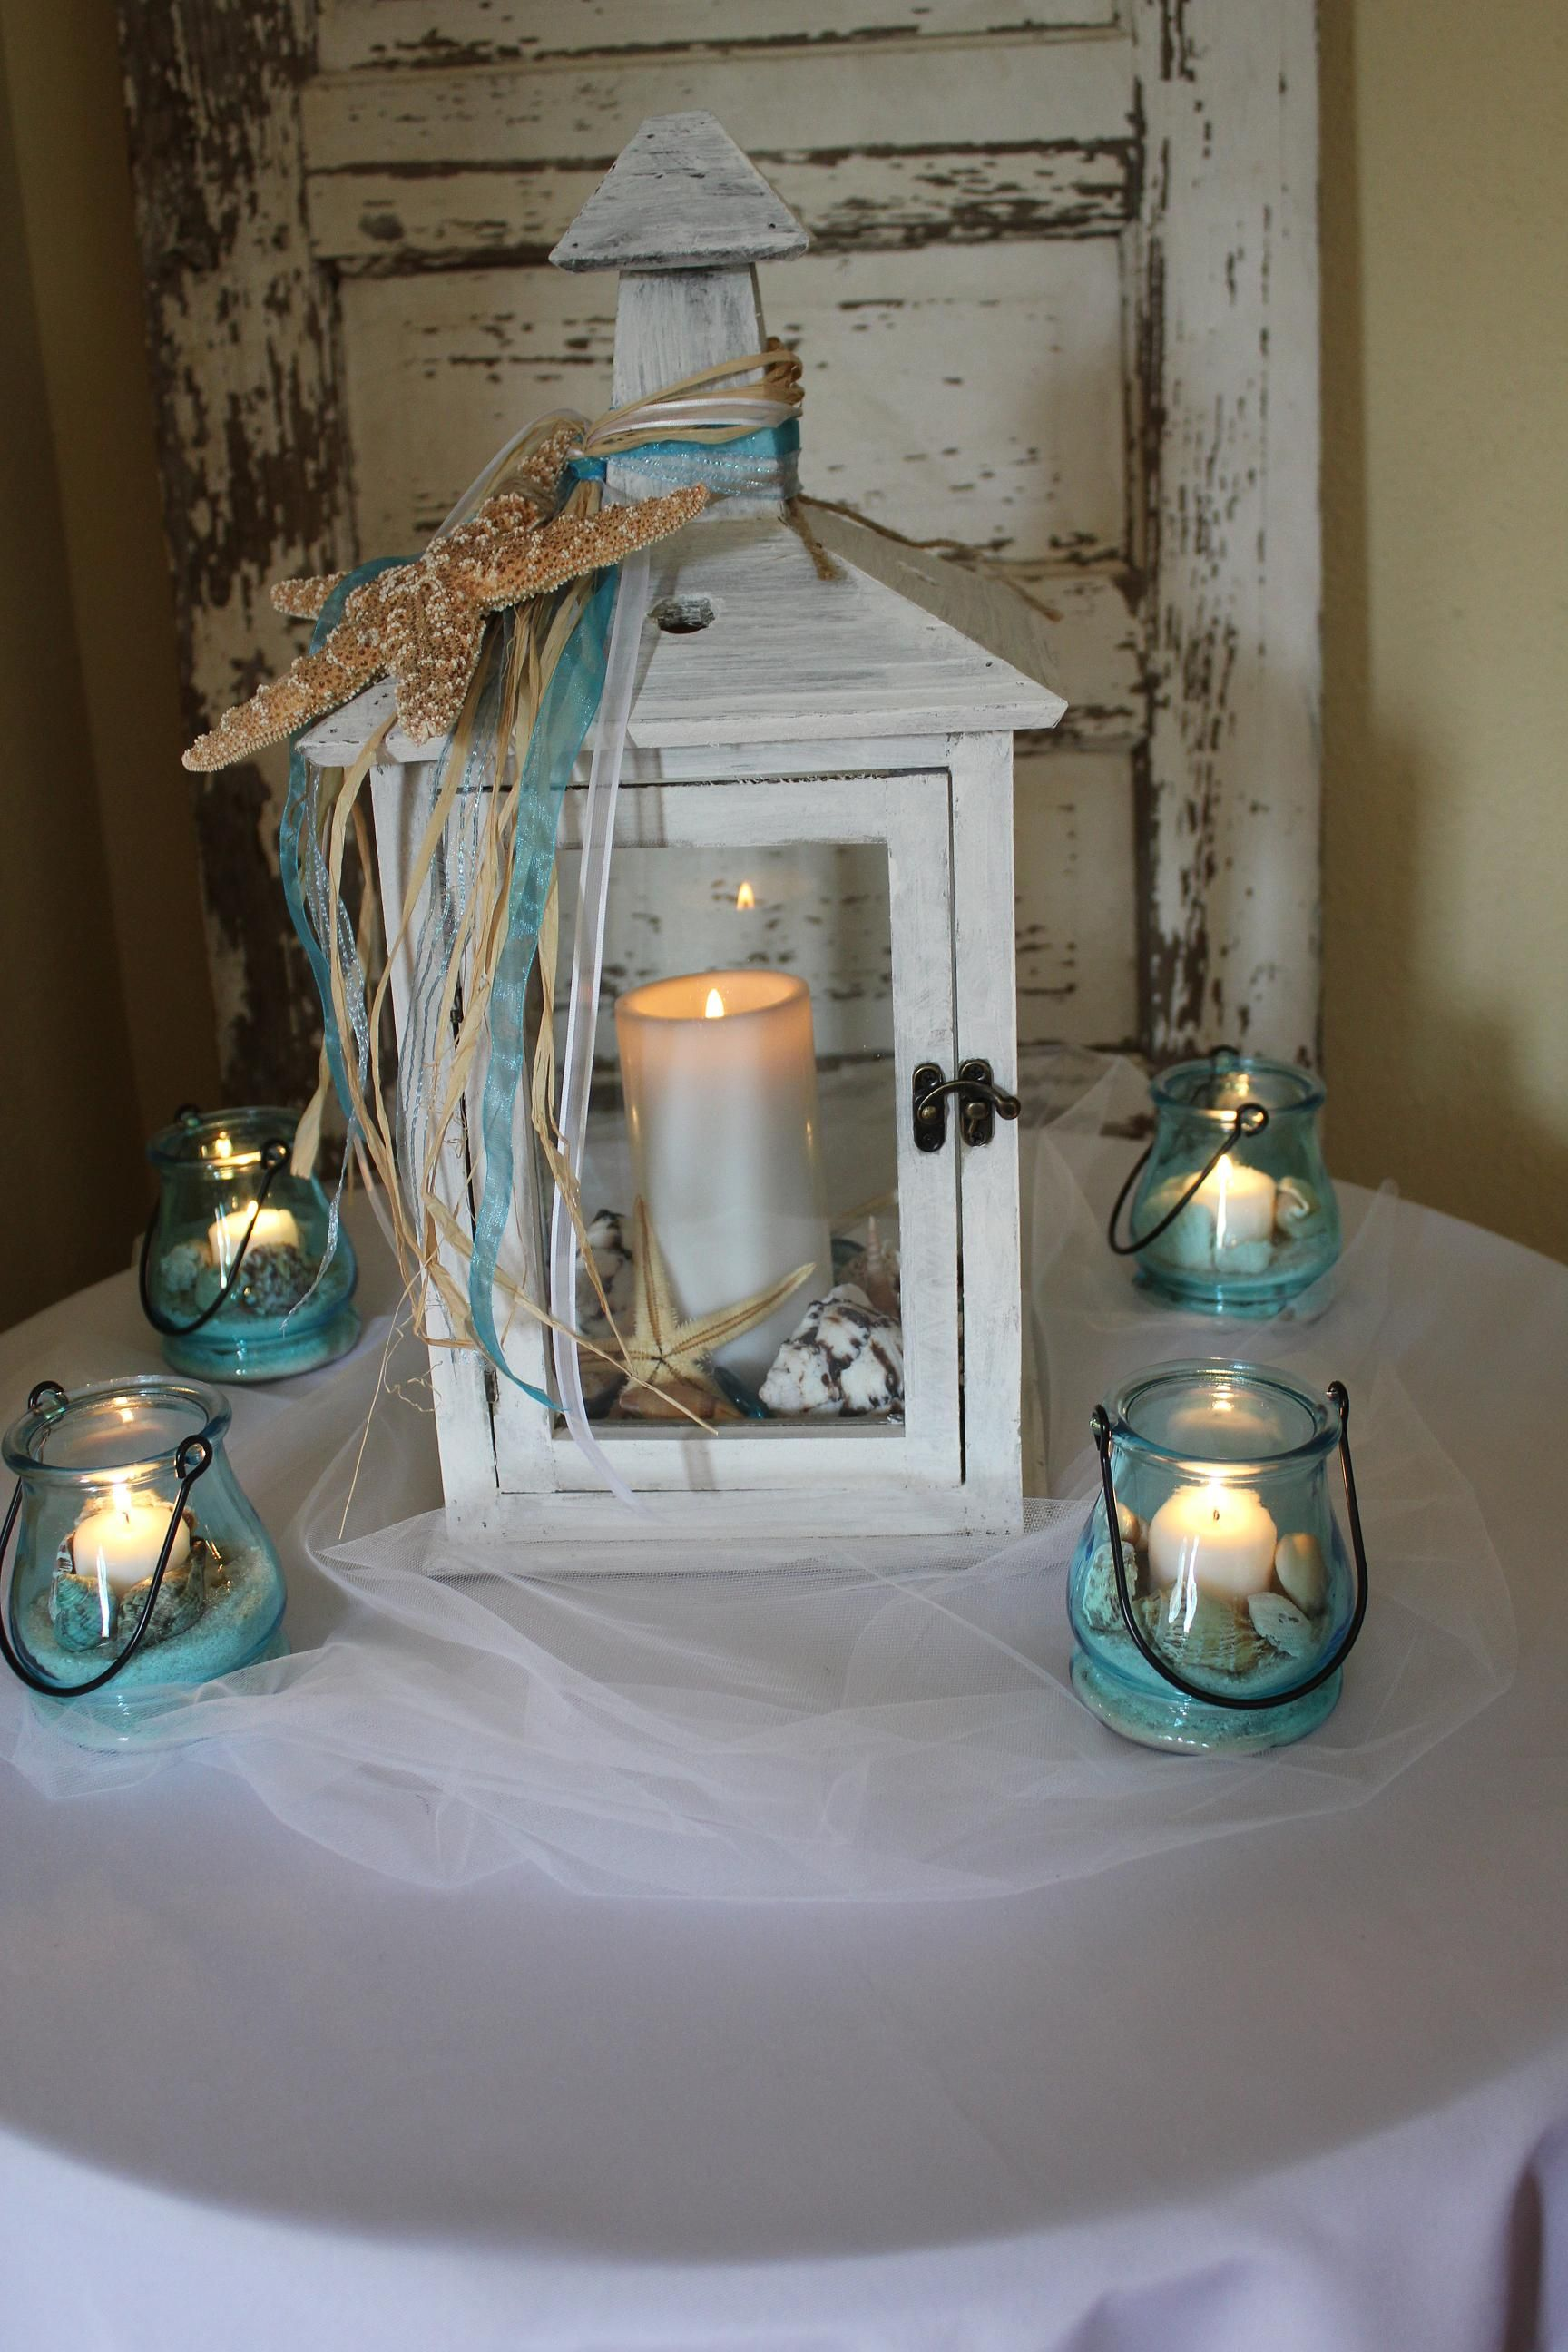 Wedding Table Beach Wedding Table Decorations beach wedding centerpieces reception decorations thoughts for rustic lantern centerpiece unique ideas